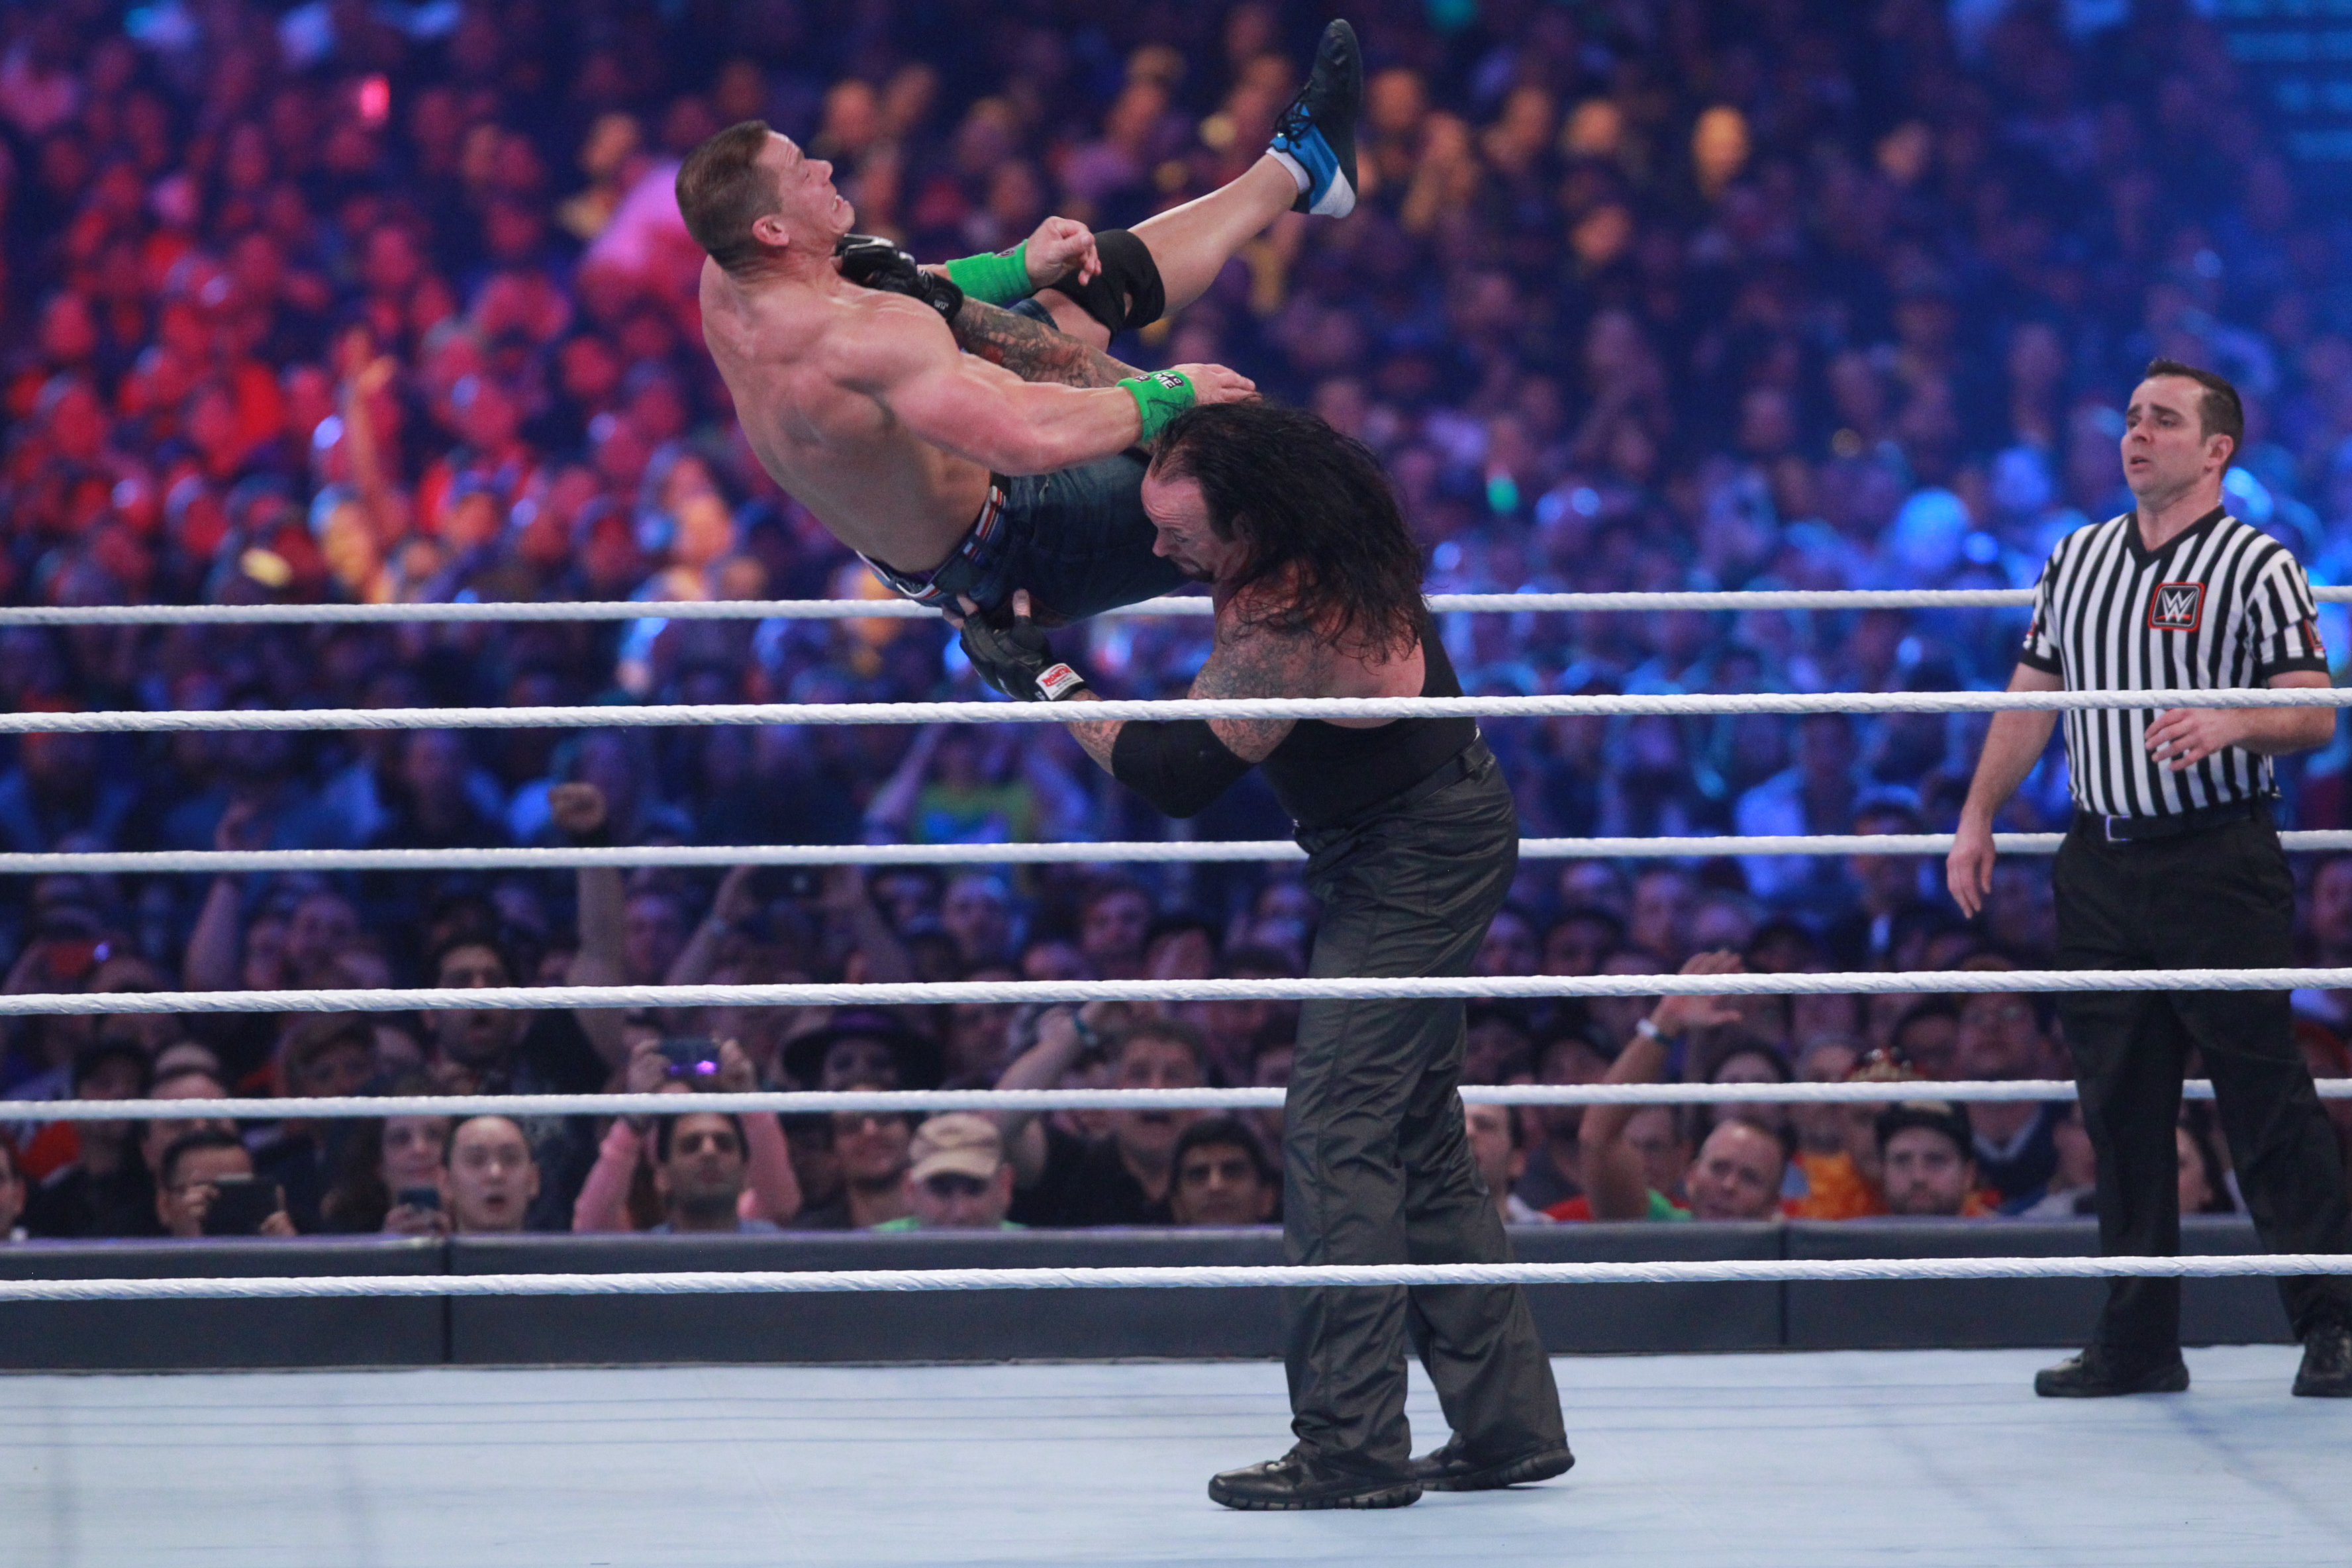 Cena being thrown by the Undertaker